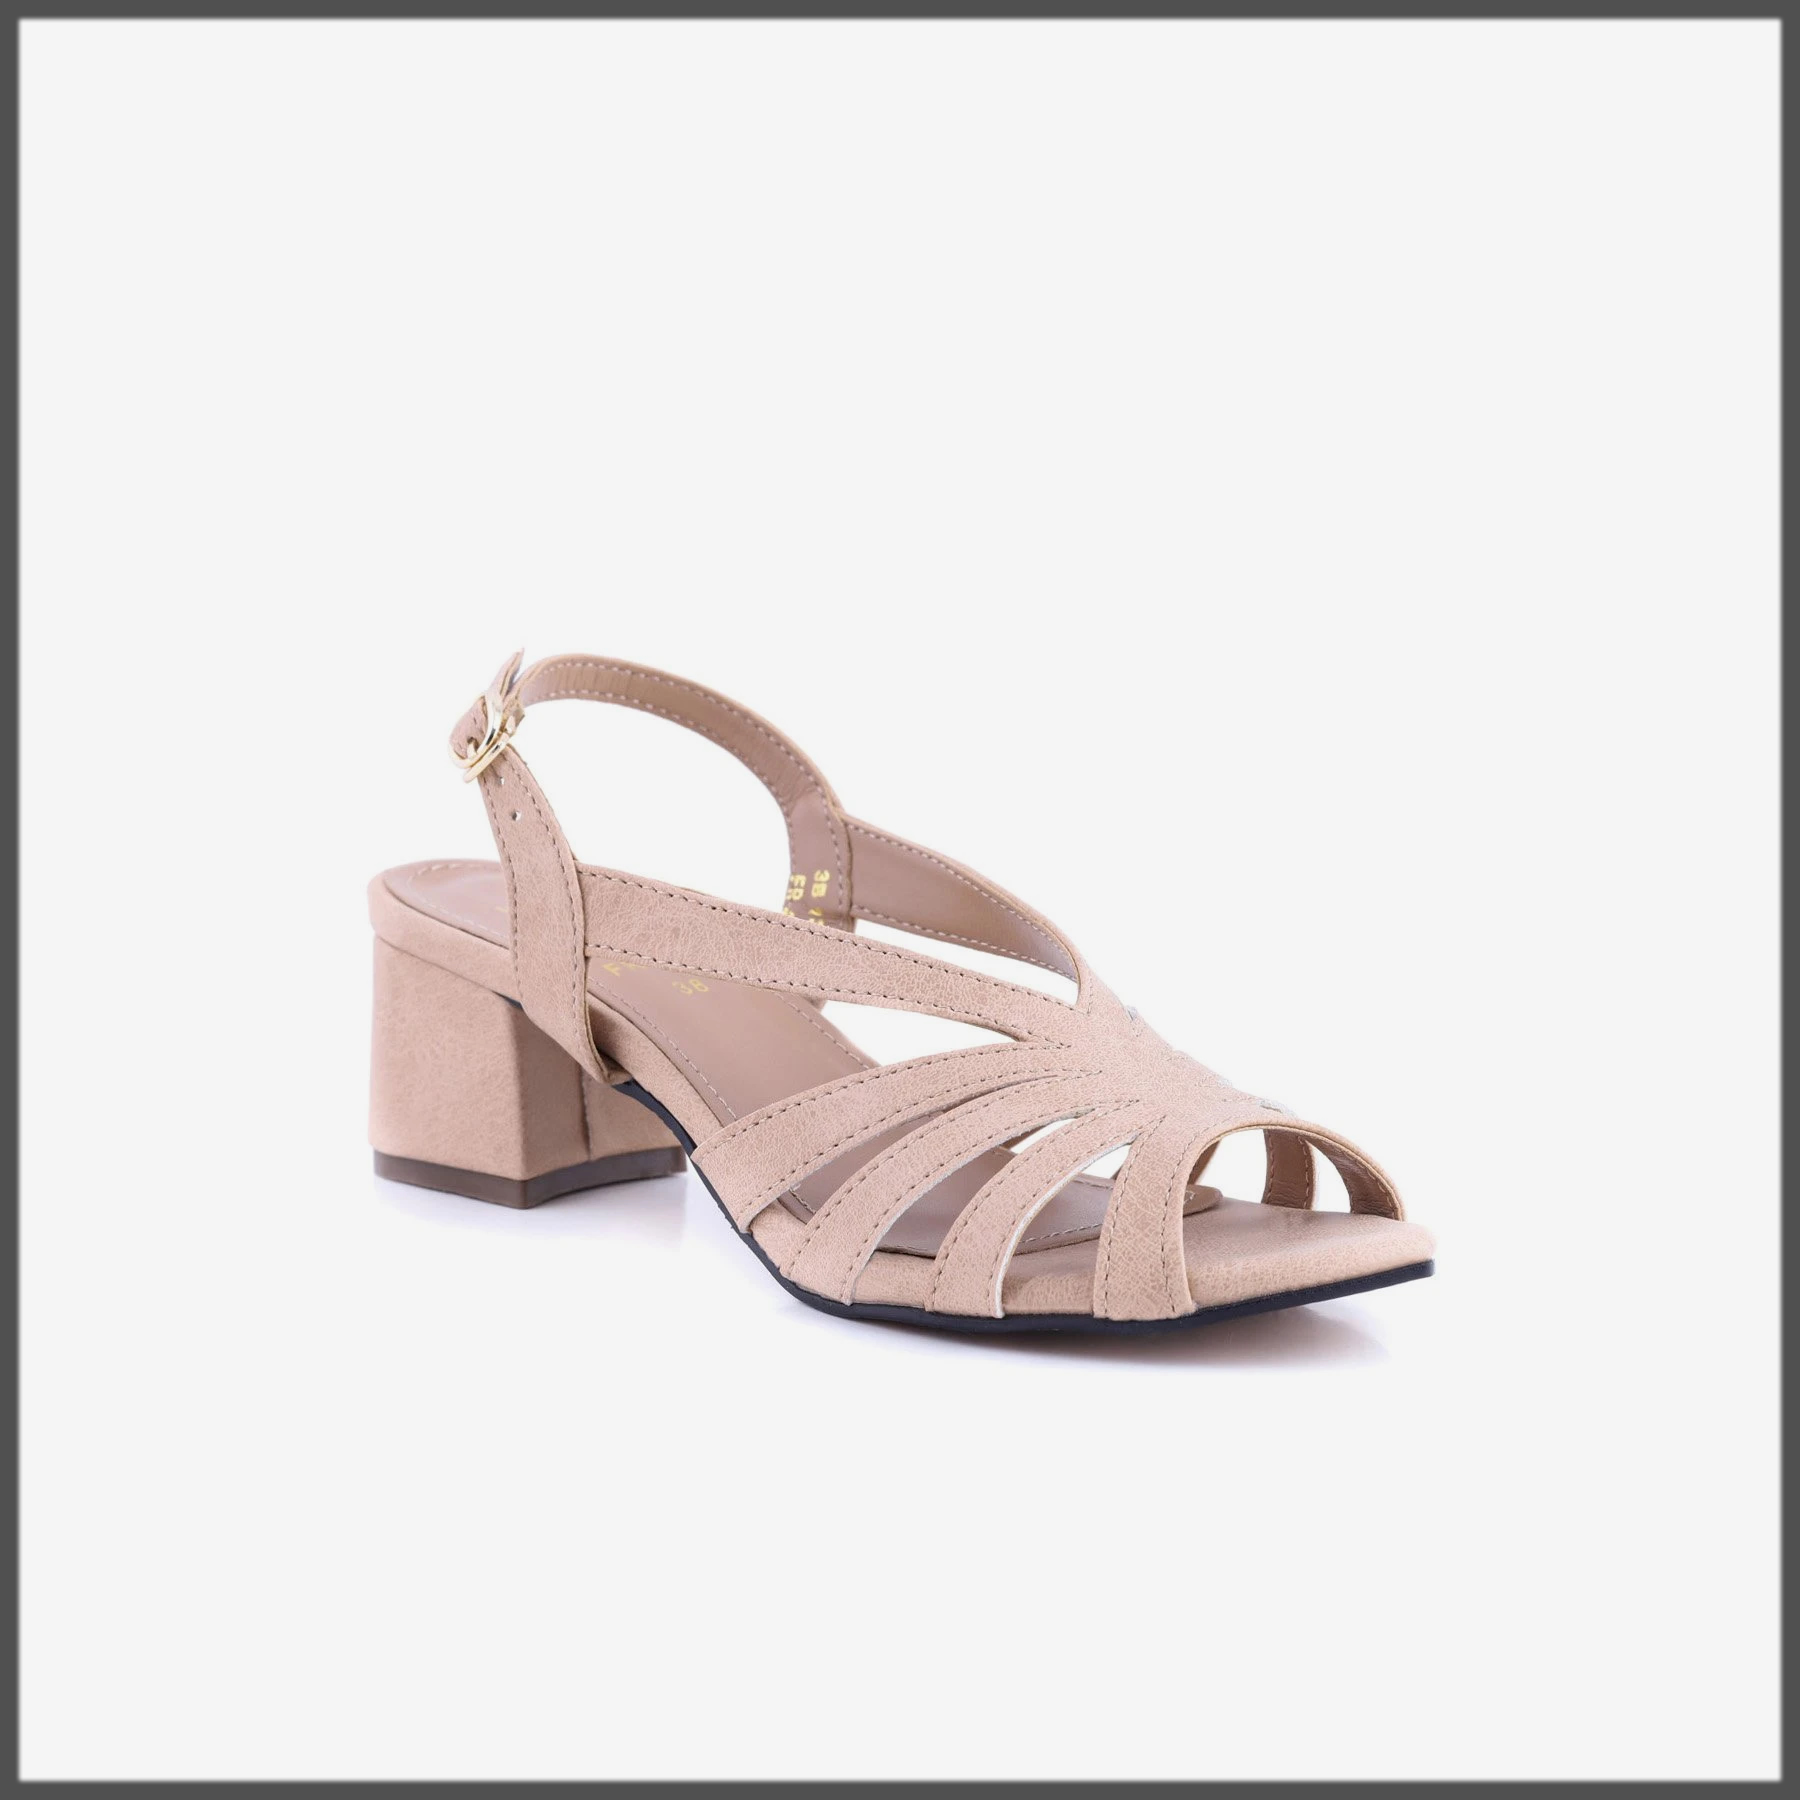 Fawn Color Sandals for Eid